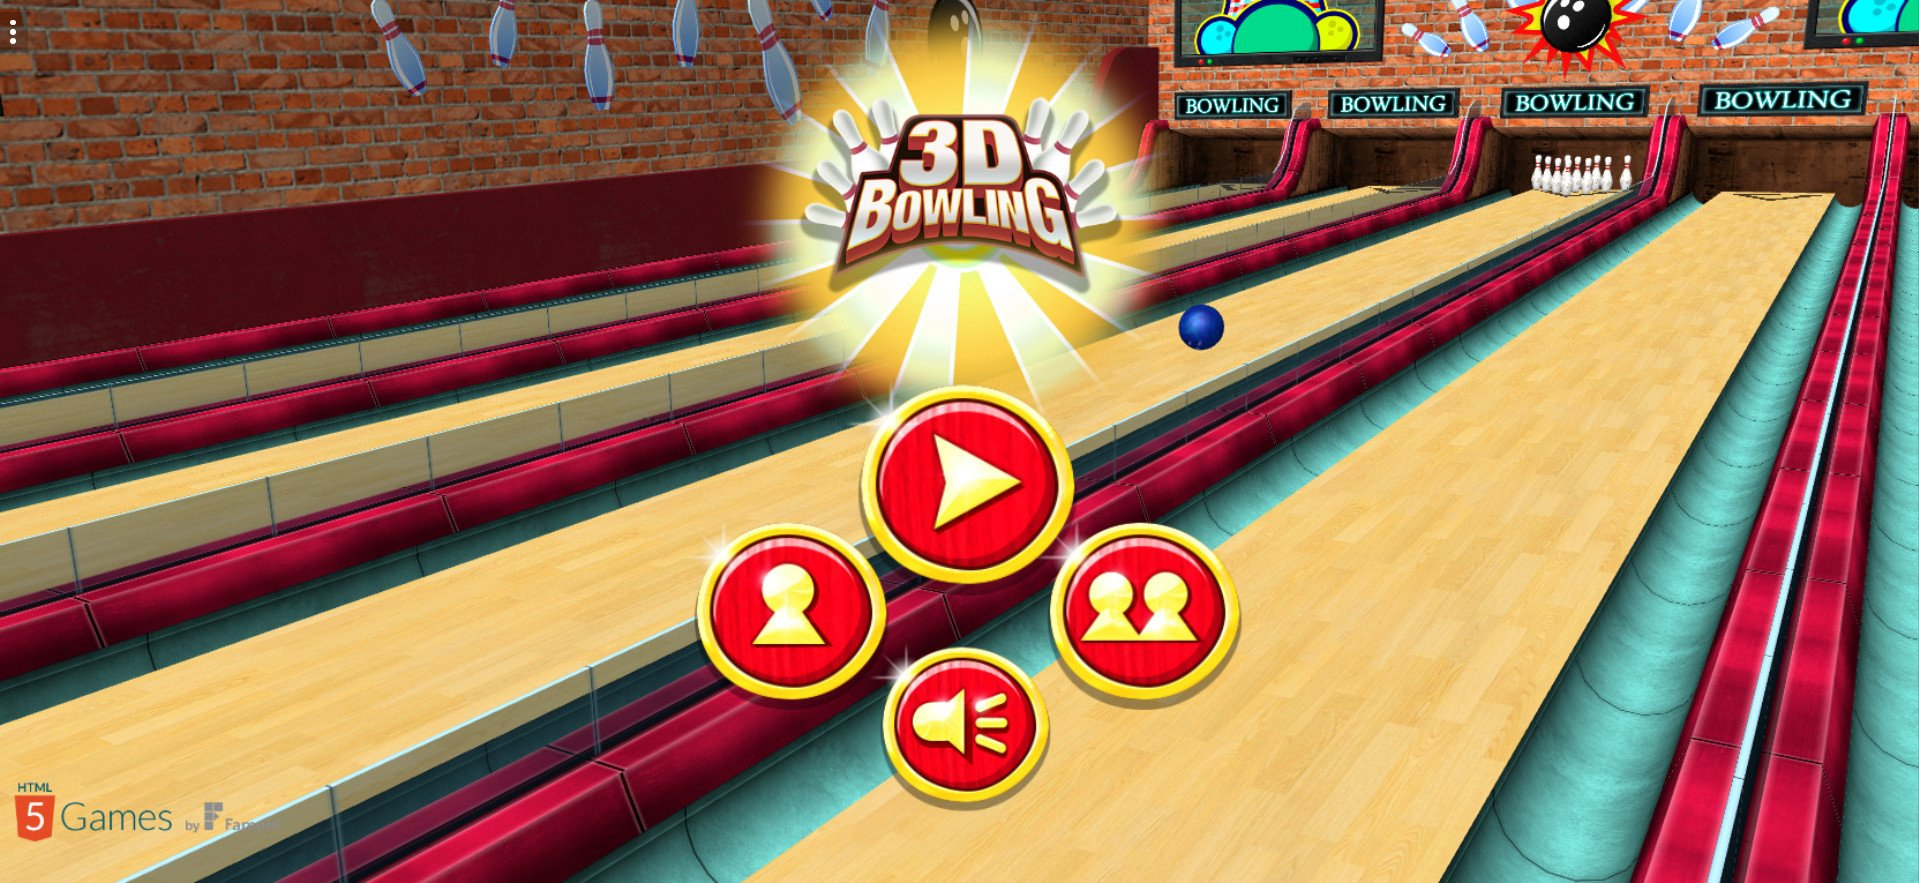 Image 3D Bowling: Smash Pins for a Strike or Spare